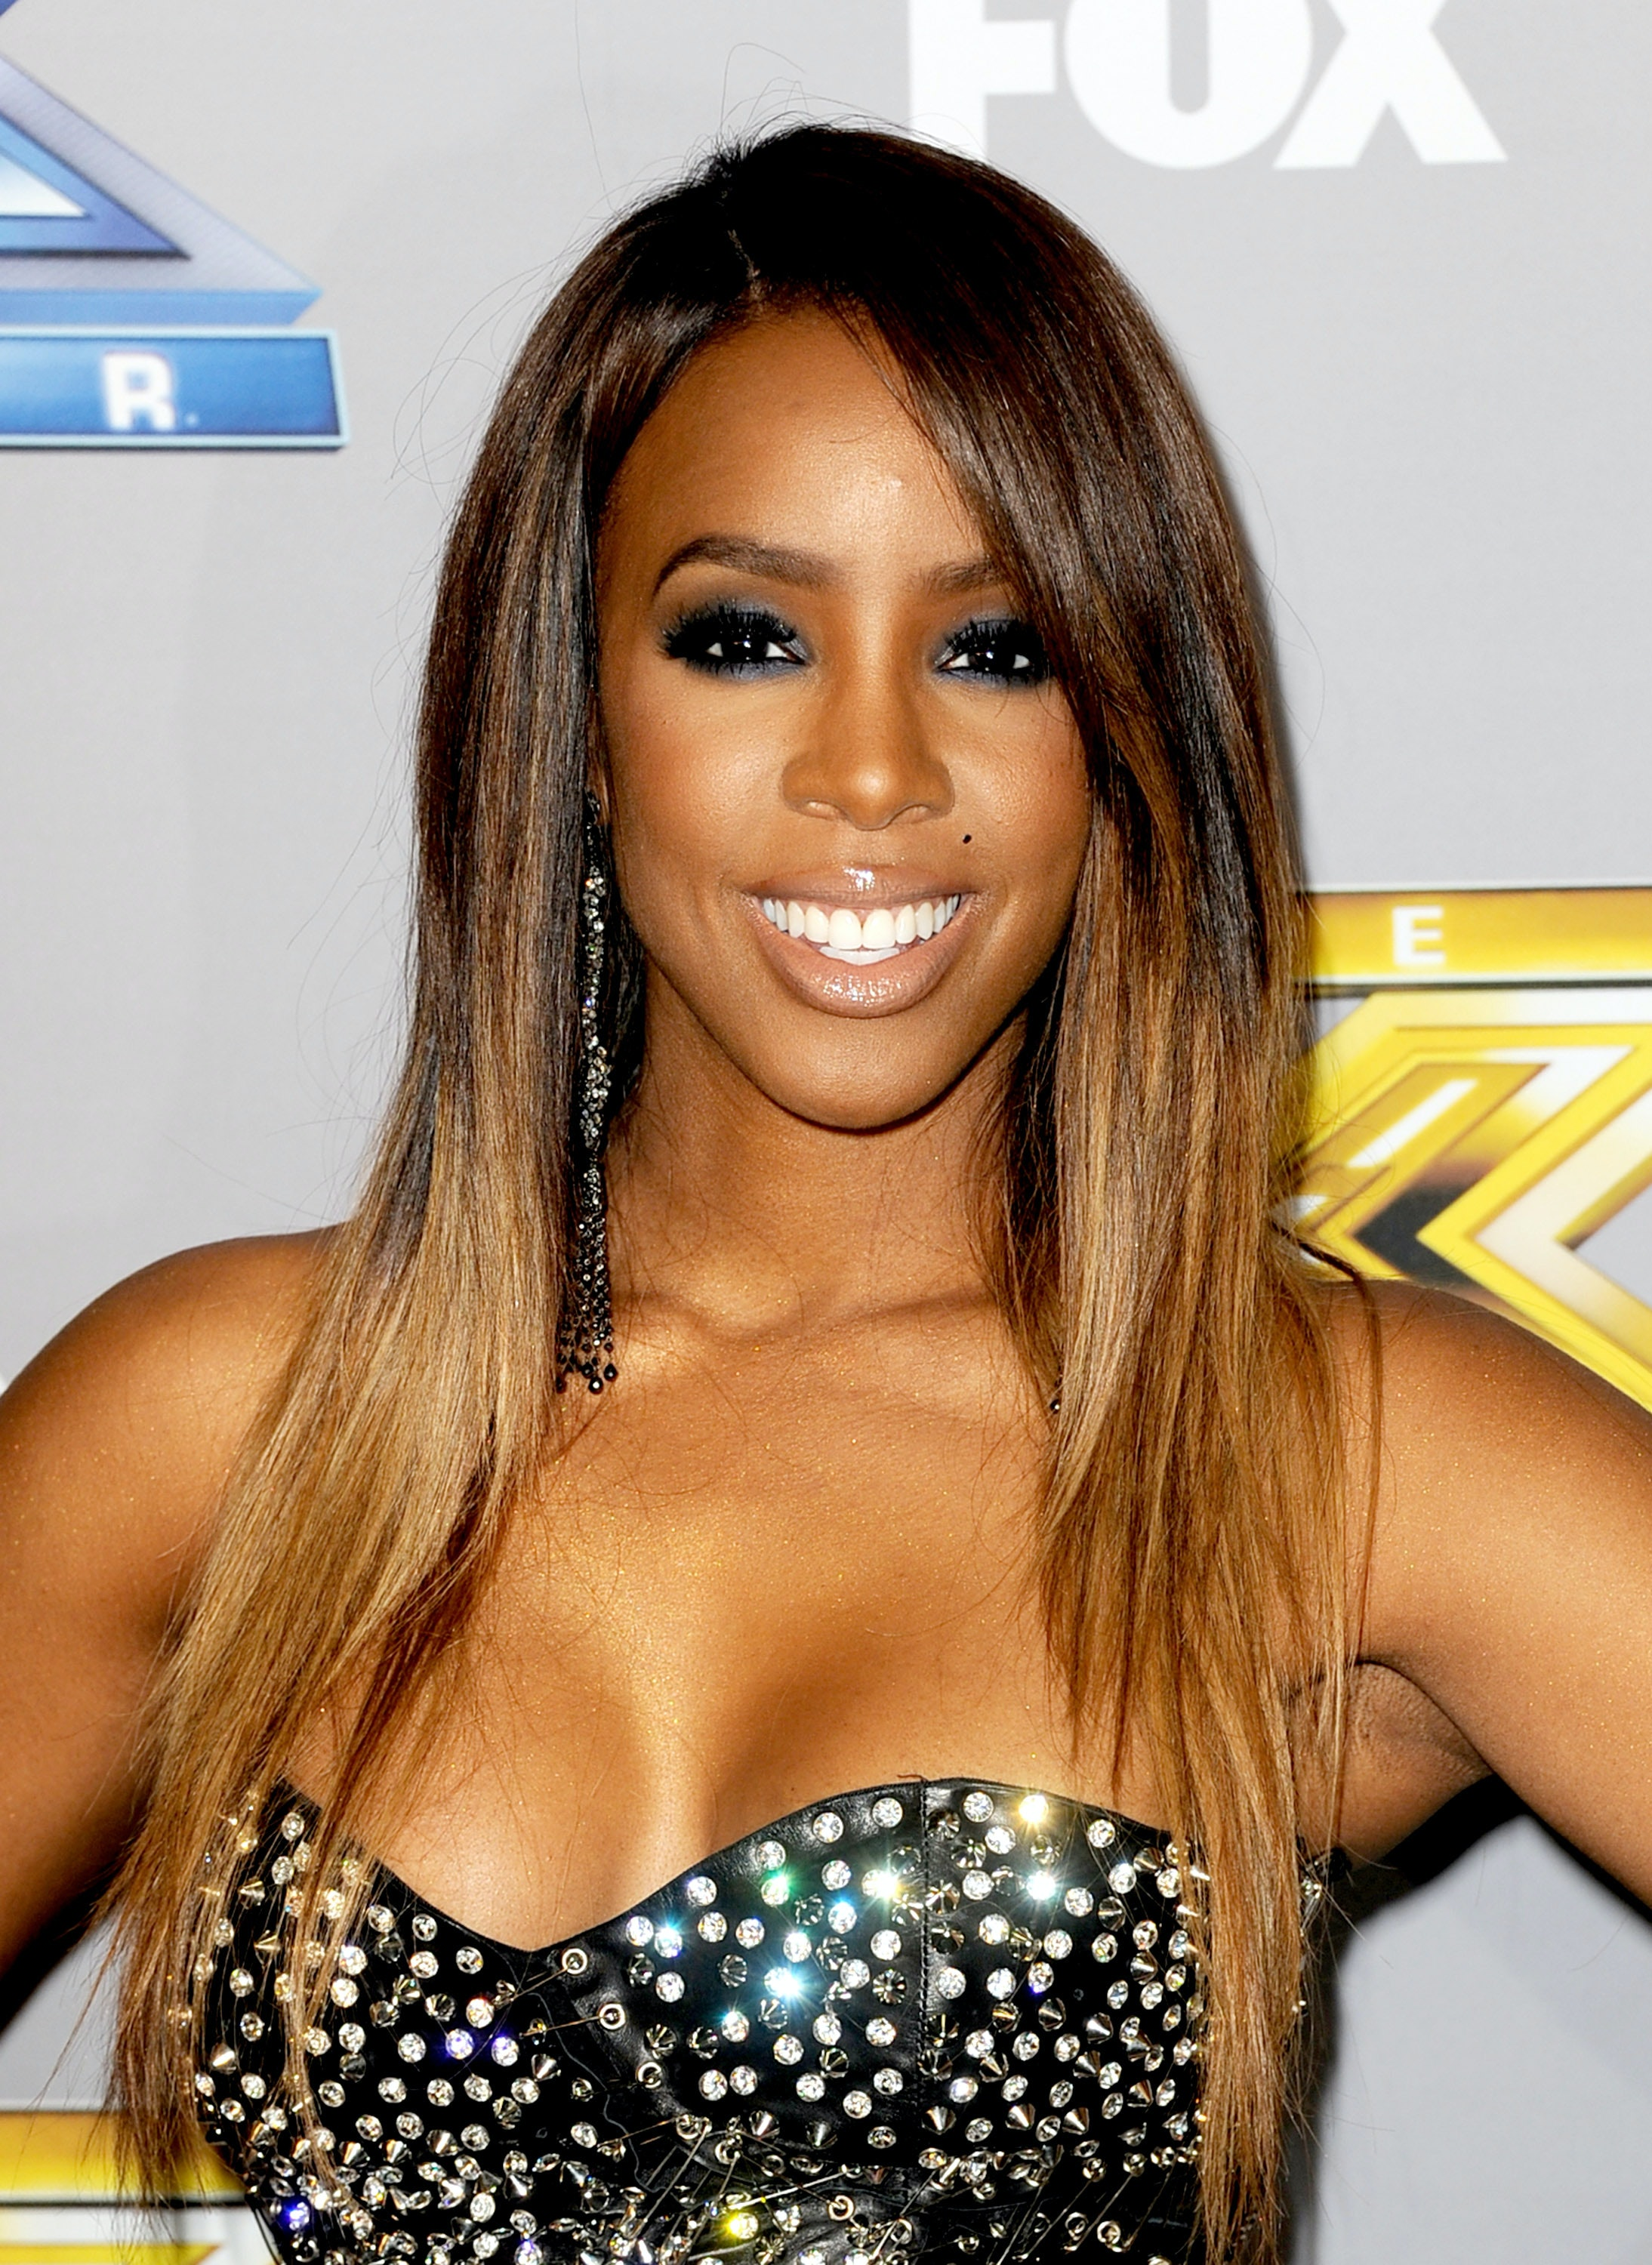 Sideboobs Kelly Rowland naked (68 foto and video), Sexy, Sideboobs, Twitter, bra 2018